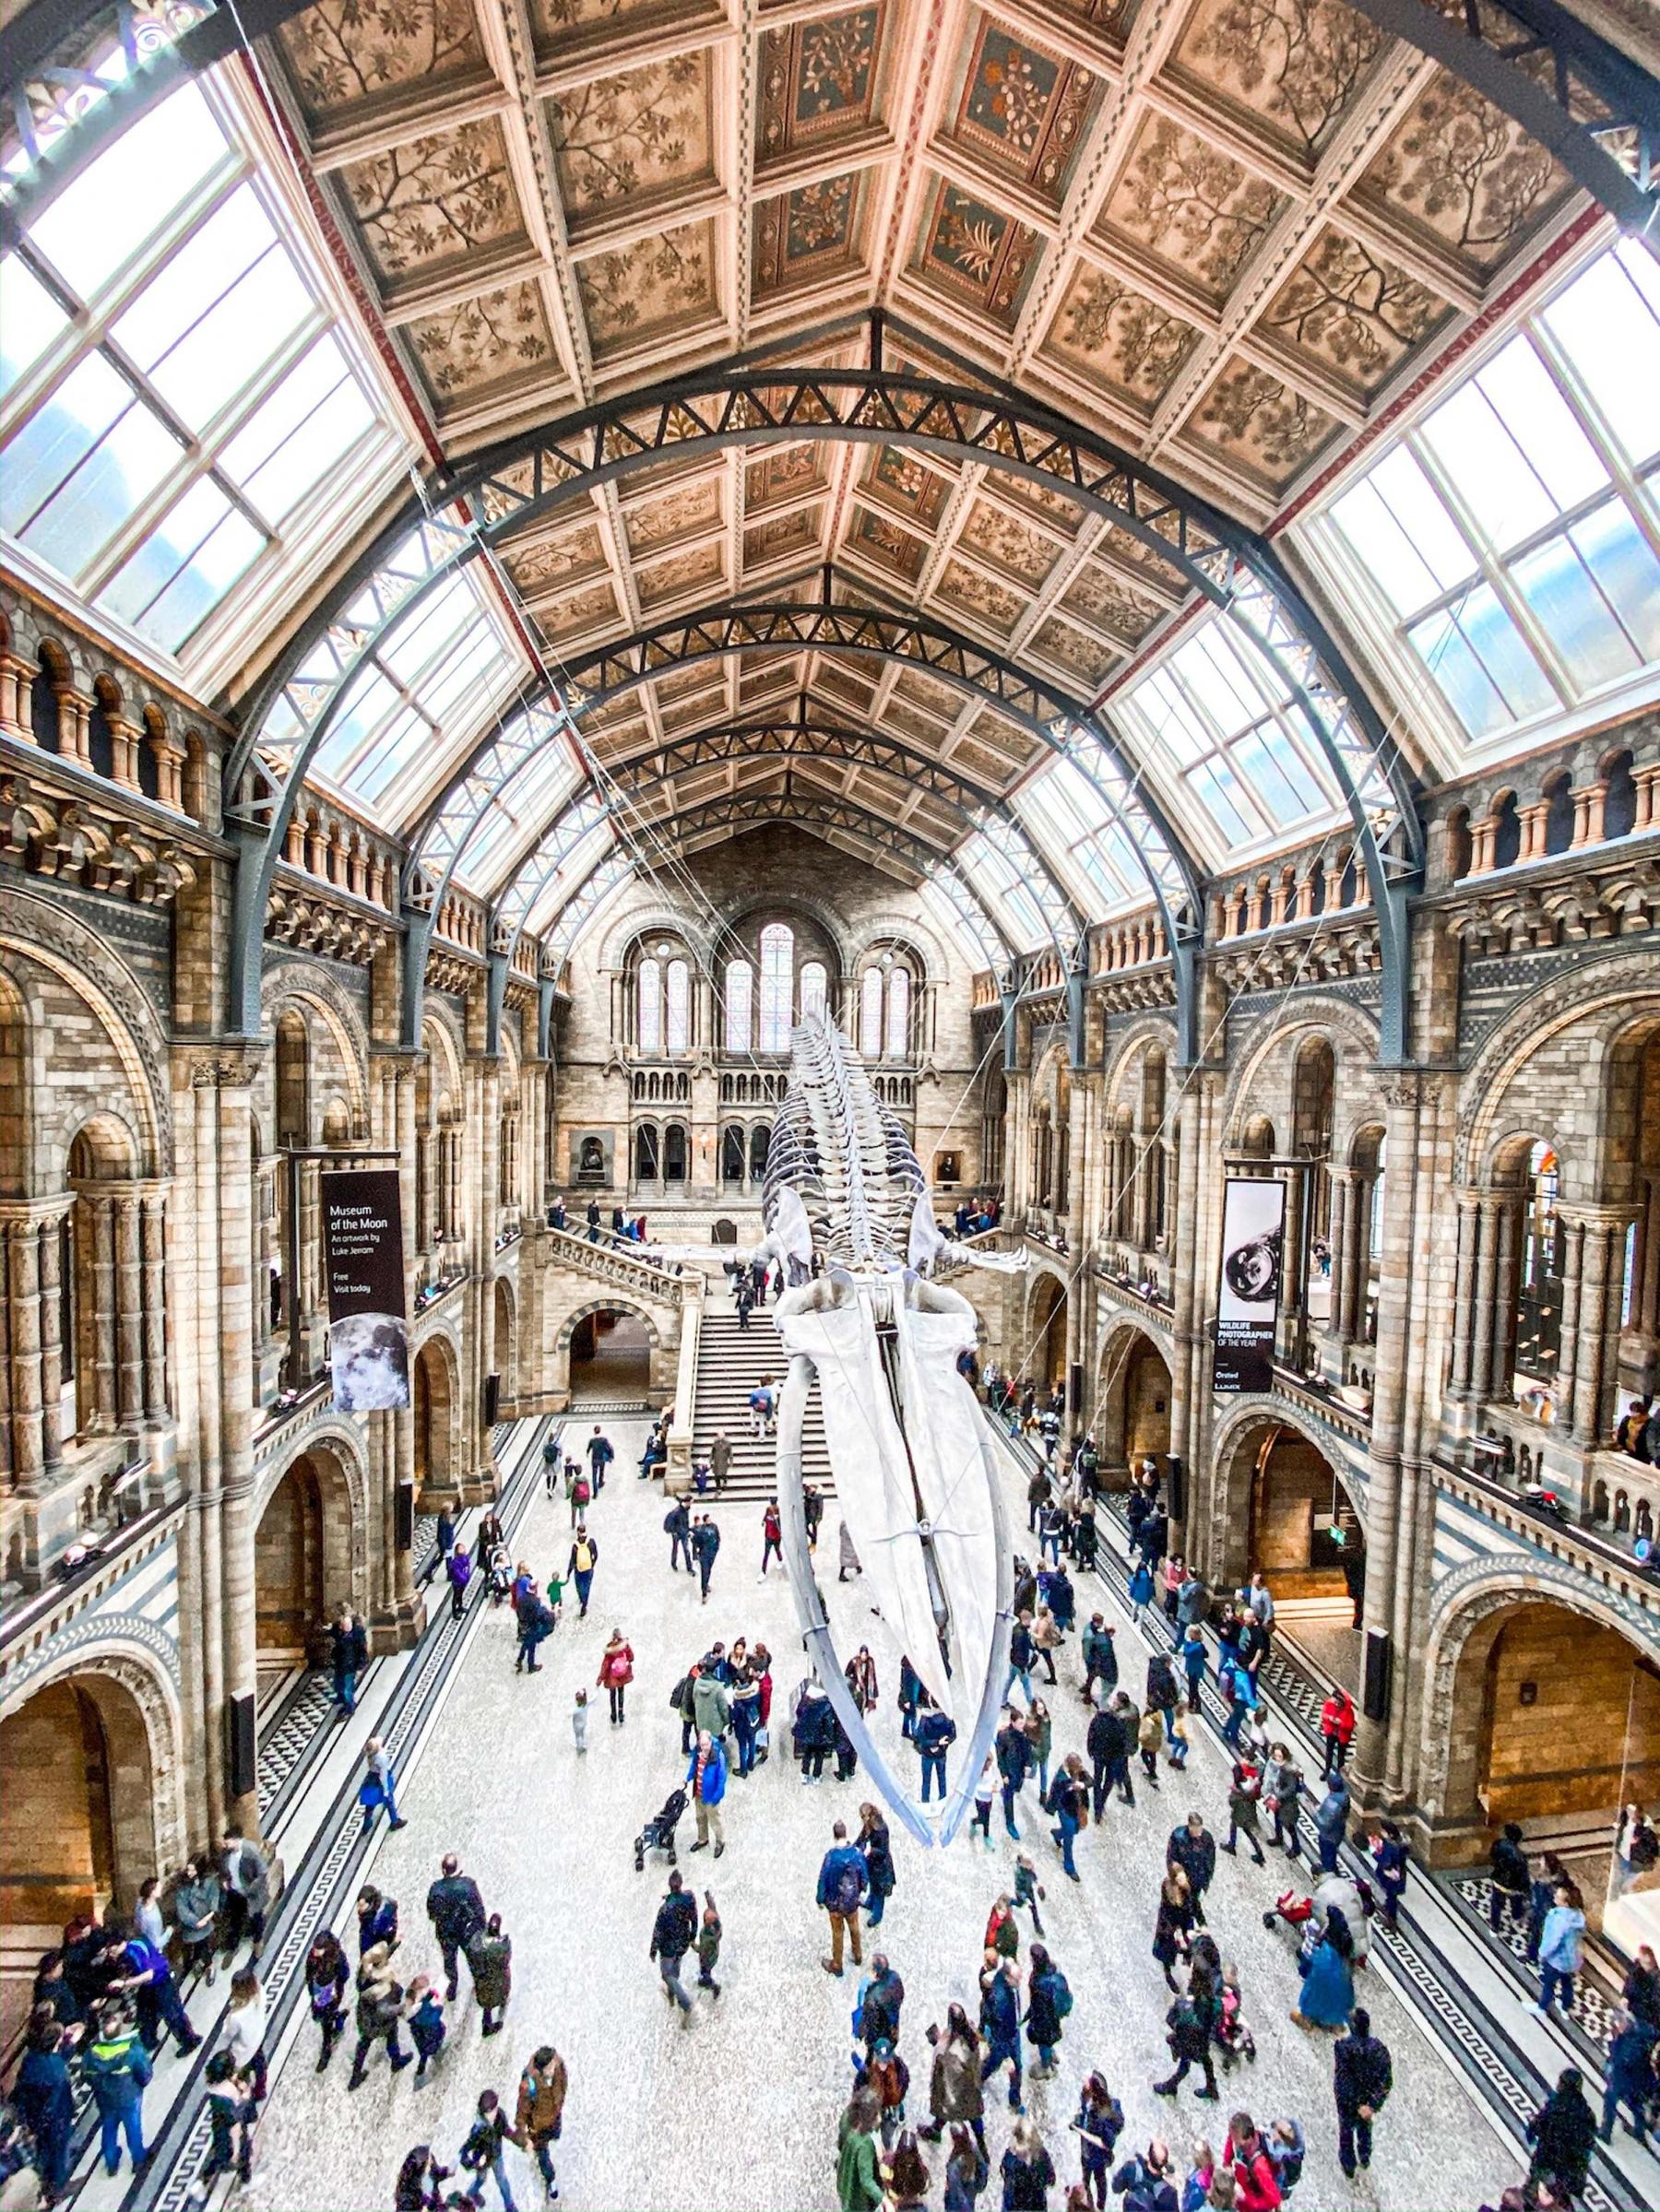 Natural History Museum by Laura Chouette, Unsplash